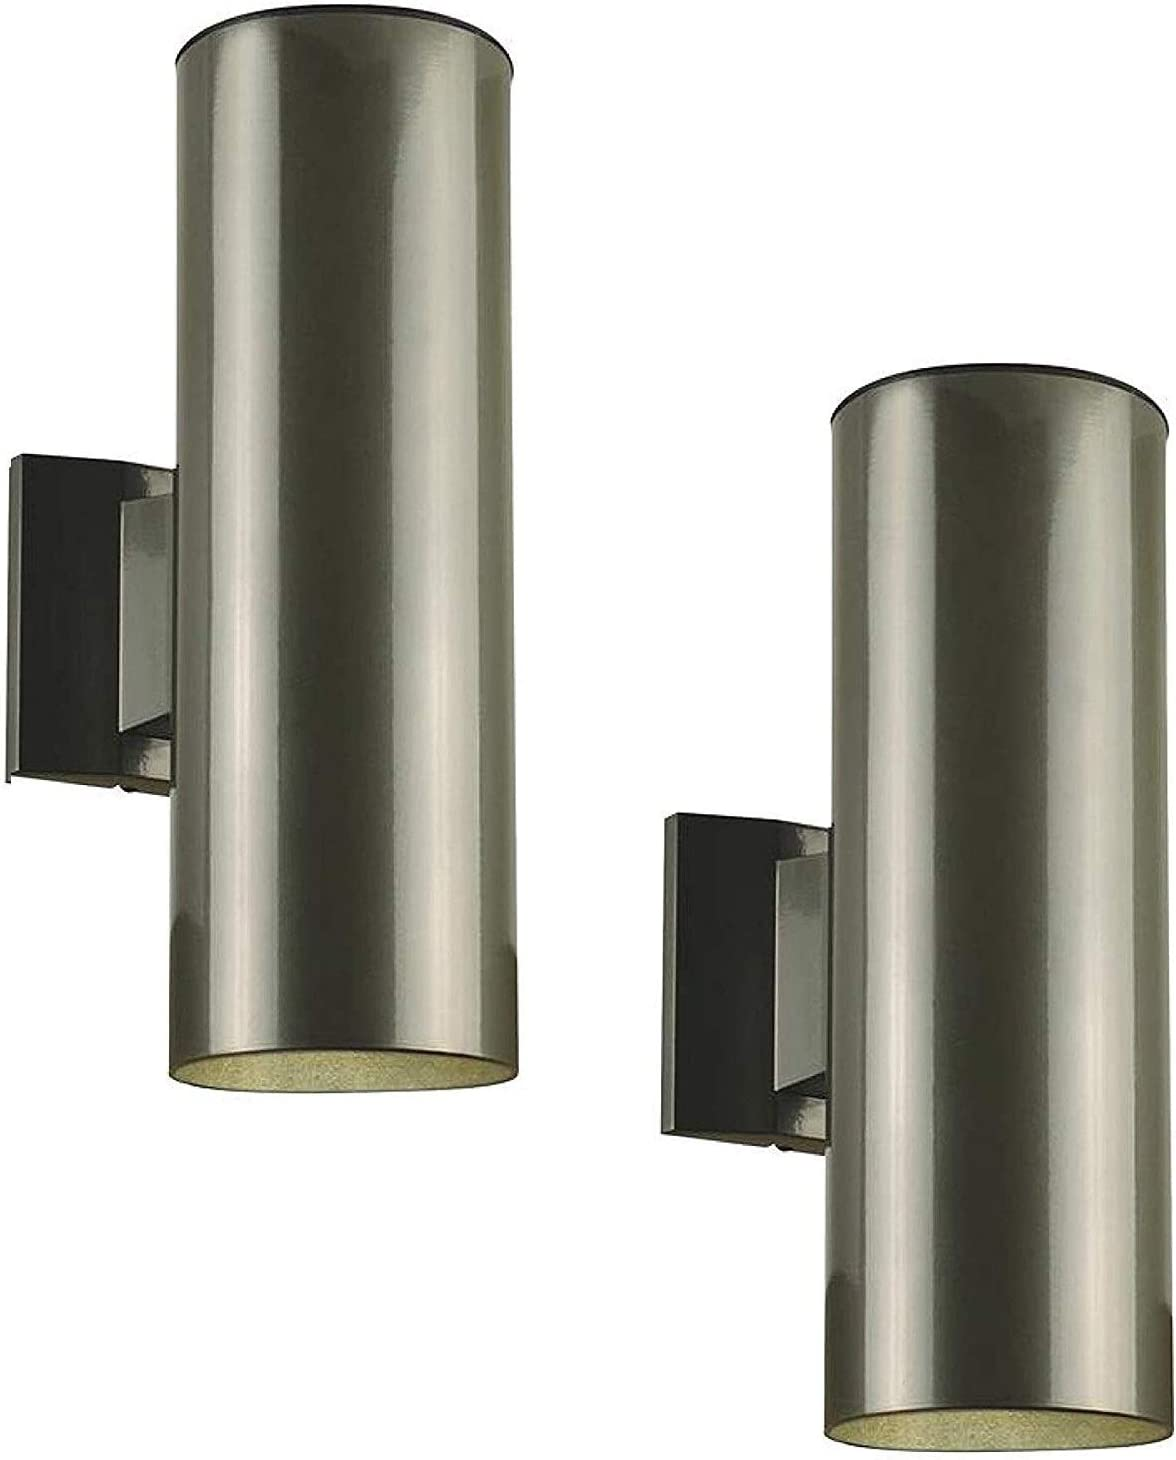 Dysmio Lighting Outdoor Wall Fixture, Up and Down Light, Polished Graphite Finish on Steel Cylinder - Pack of 2